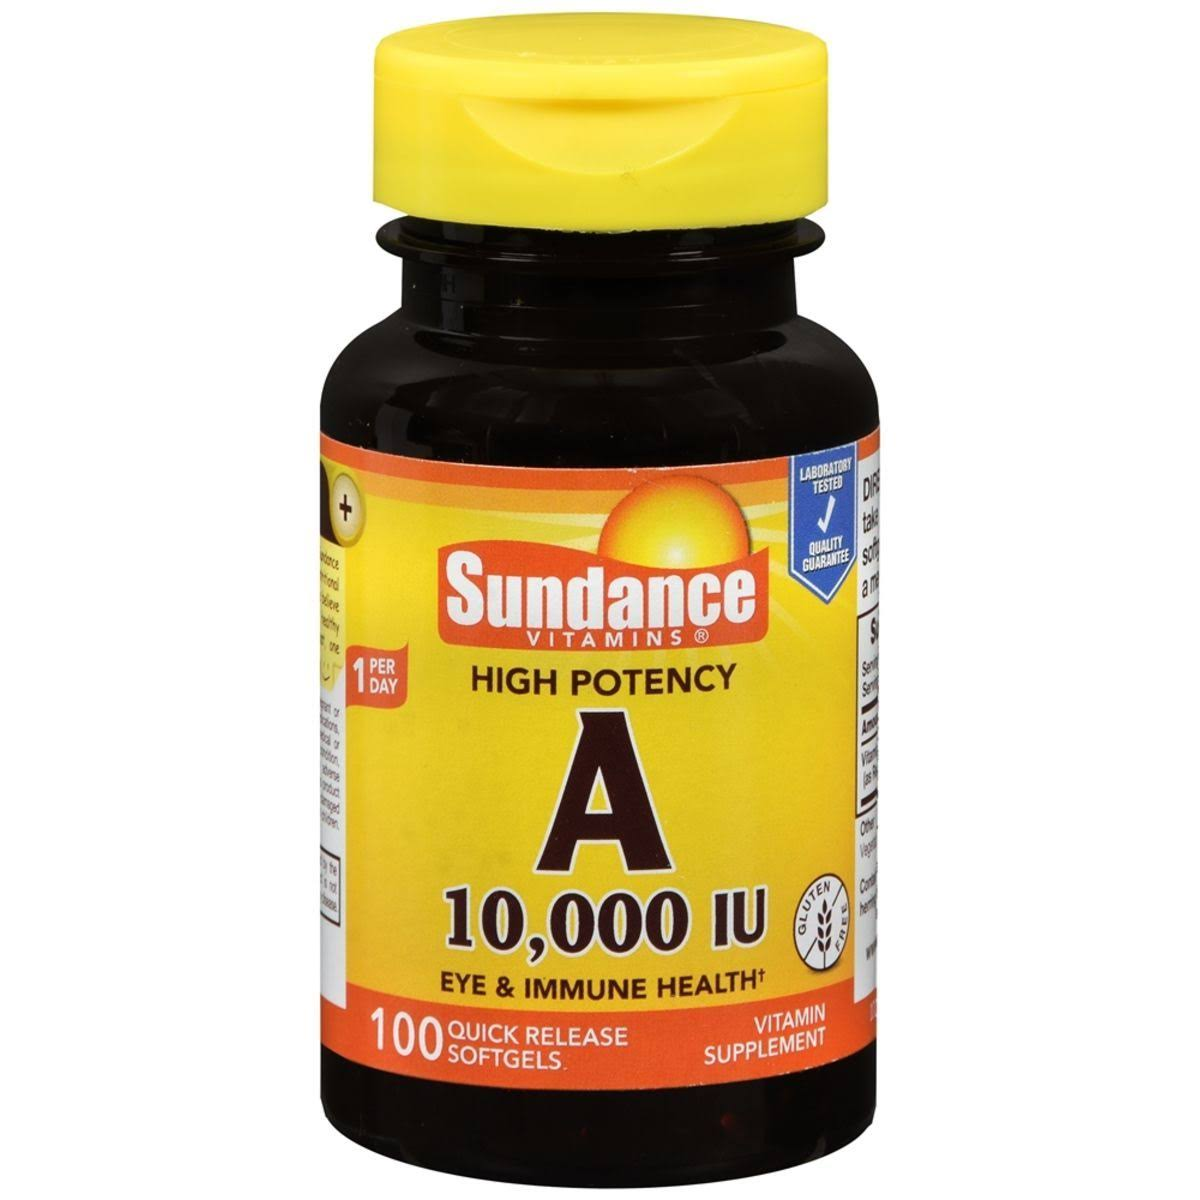 Sundance Vitamins High Potency A 10,000 IU Vitamin Supplement Quick Release Softgels - 100 ct